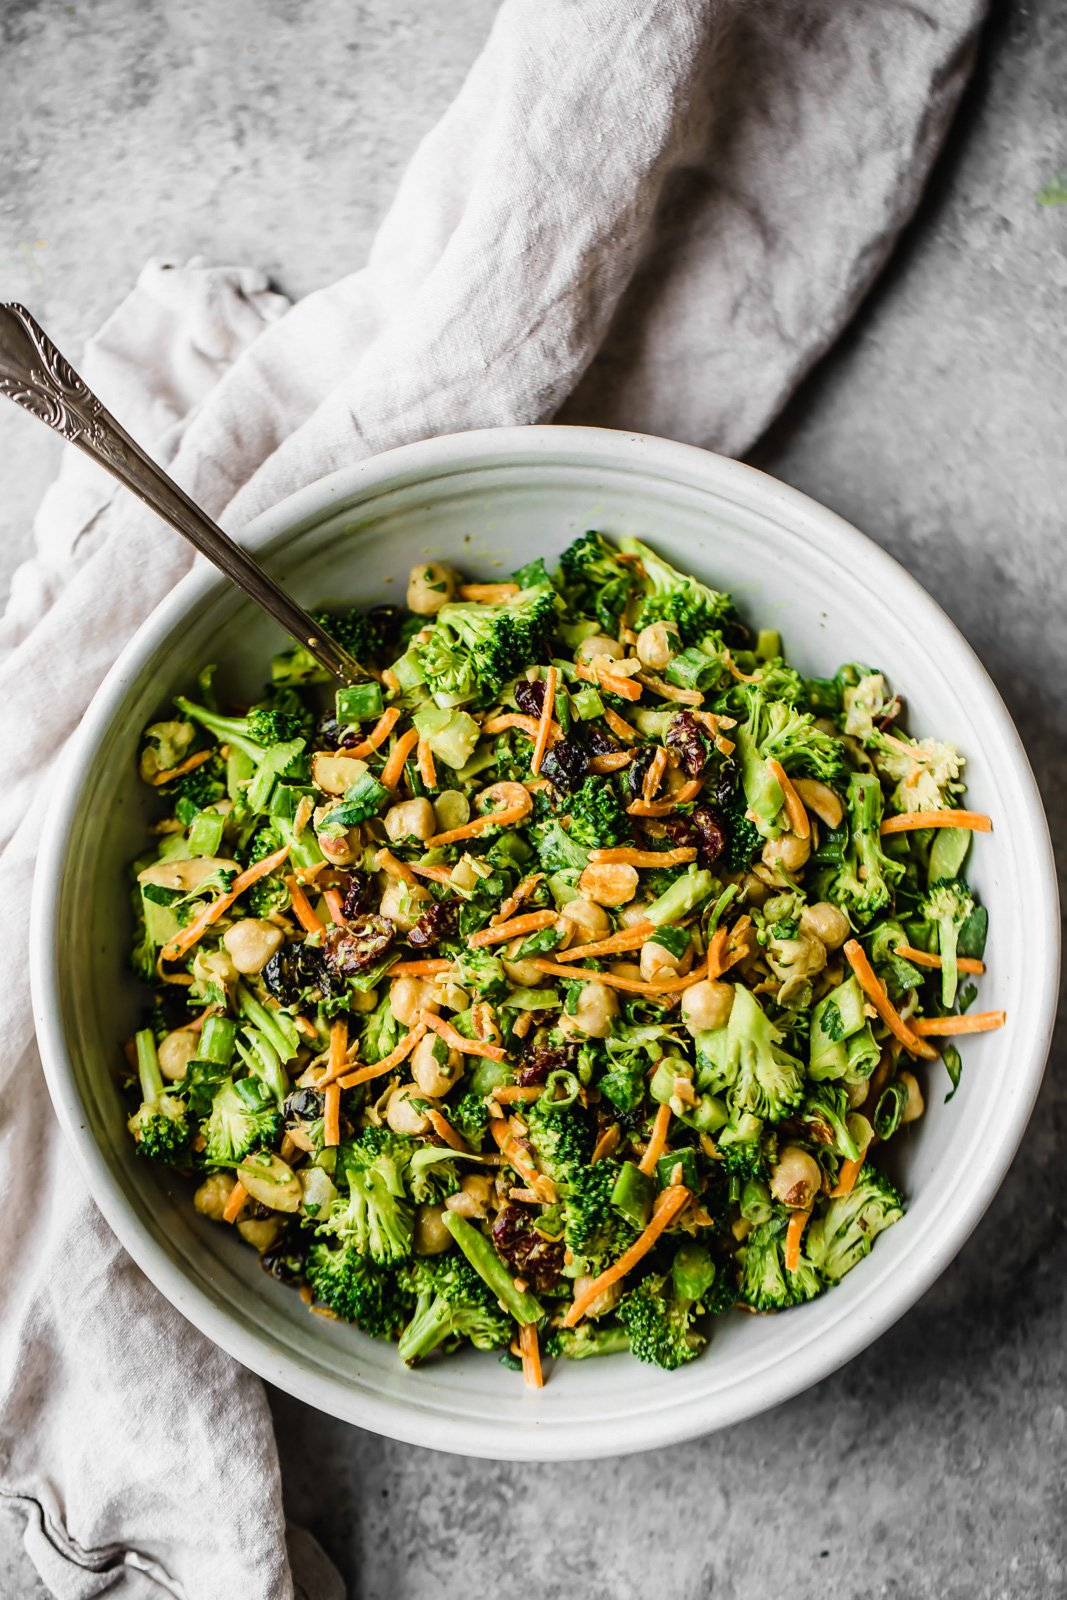 top 25 favorite recipes: broccoli salad in a bowl